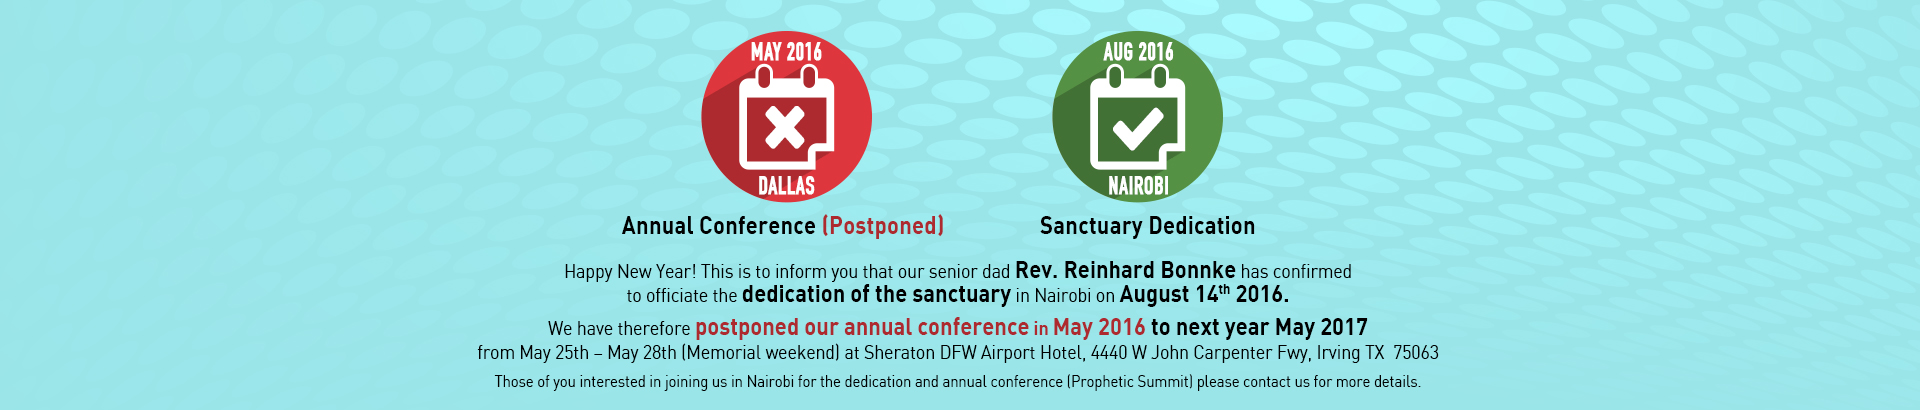 Annual-Conference-Postponed